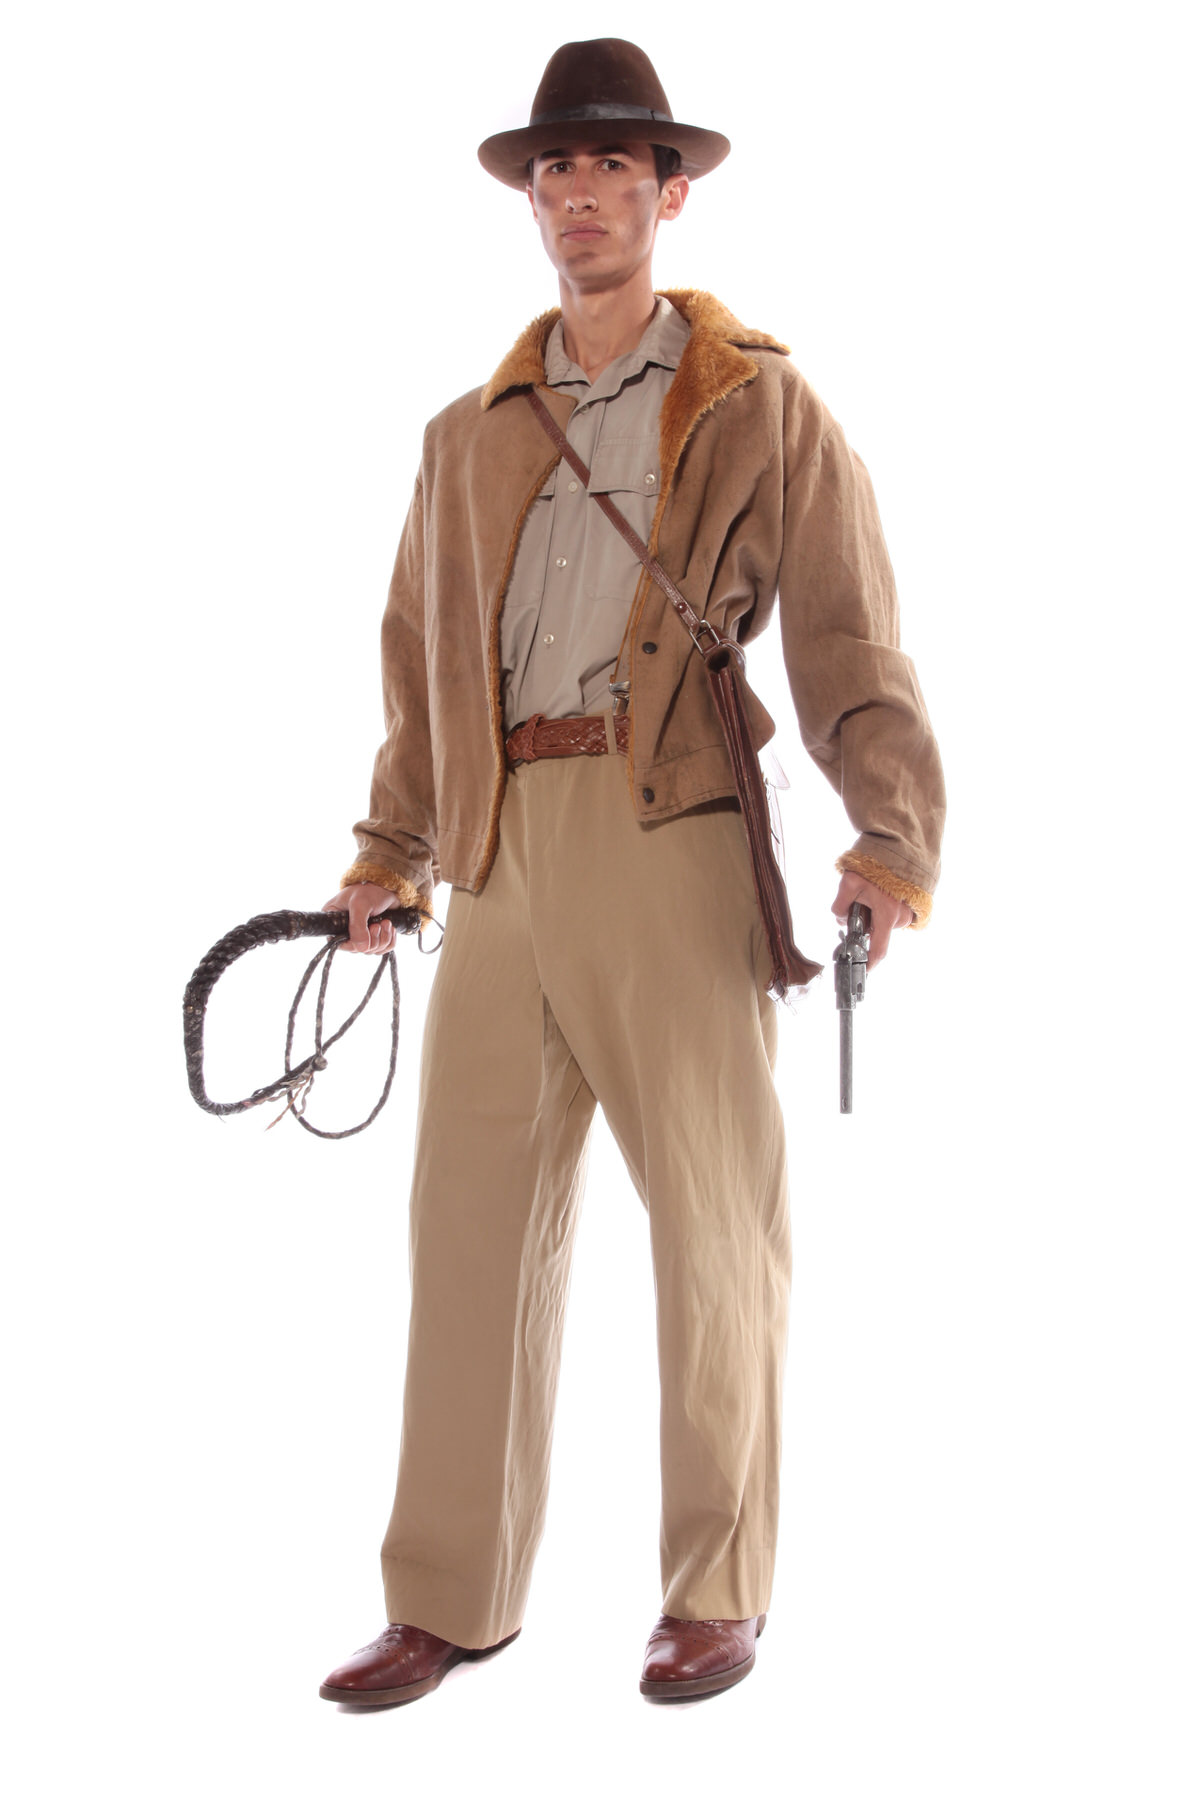 INDIANA JONES STYLE COSTUME W BULLWHIP & FAKE GUN